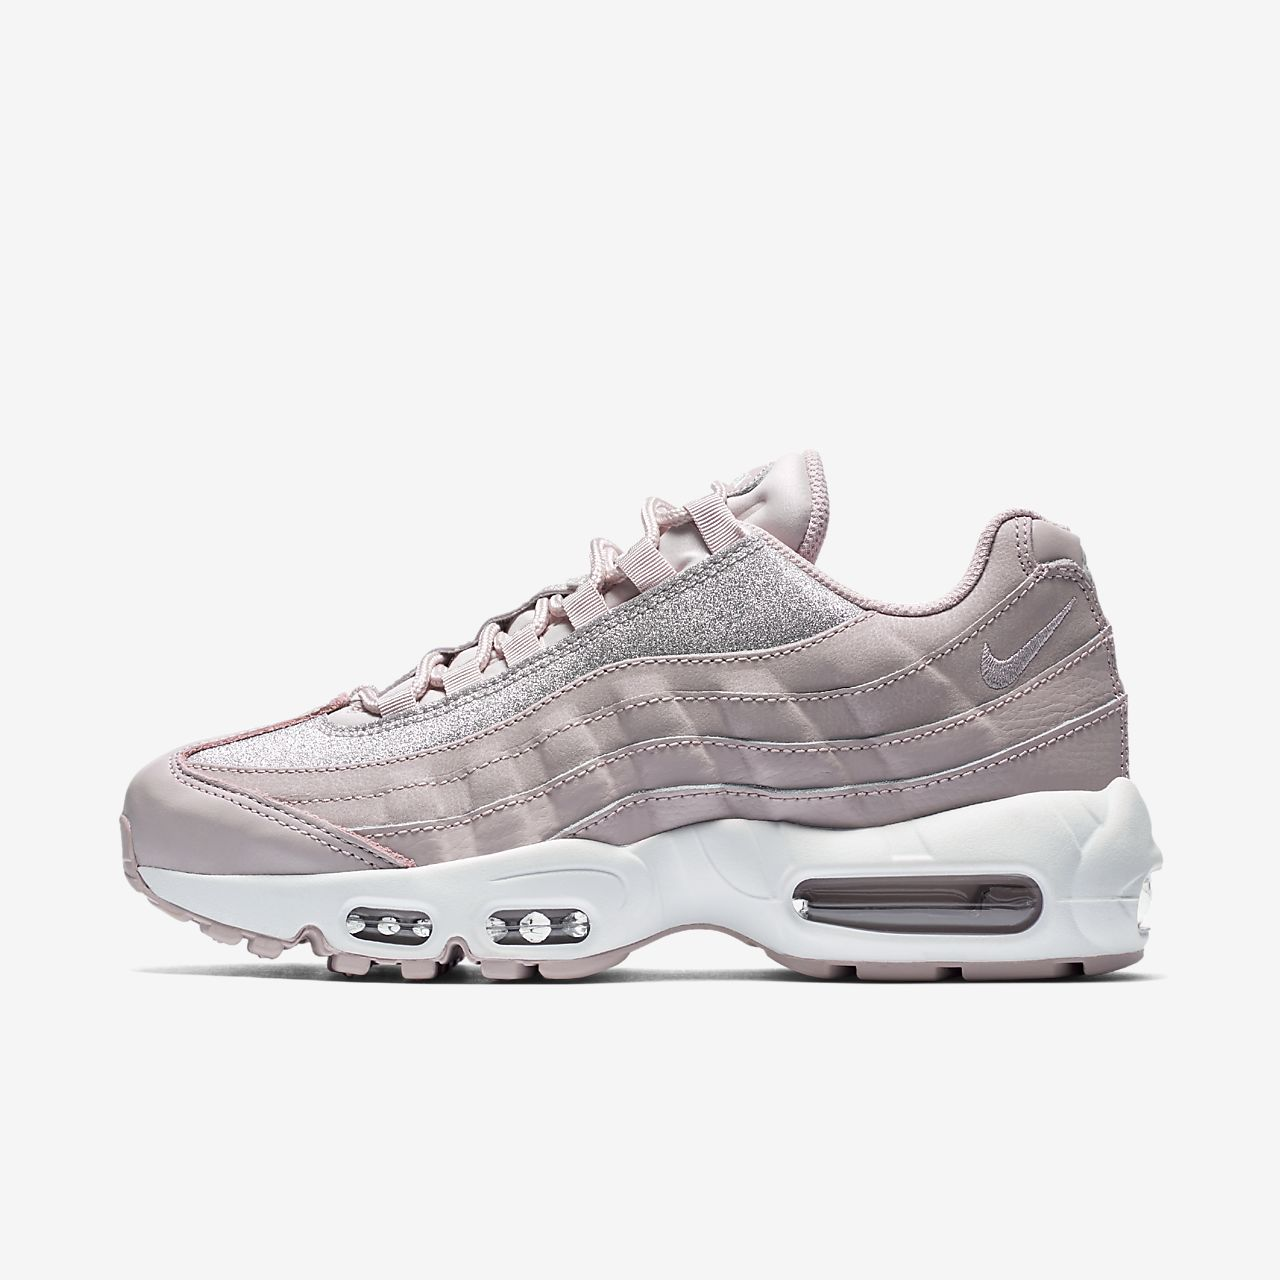 Nike Air Max 95 SE Glitter Women's Shoe